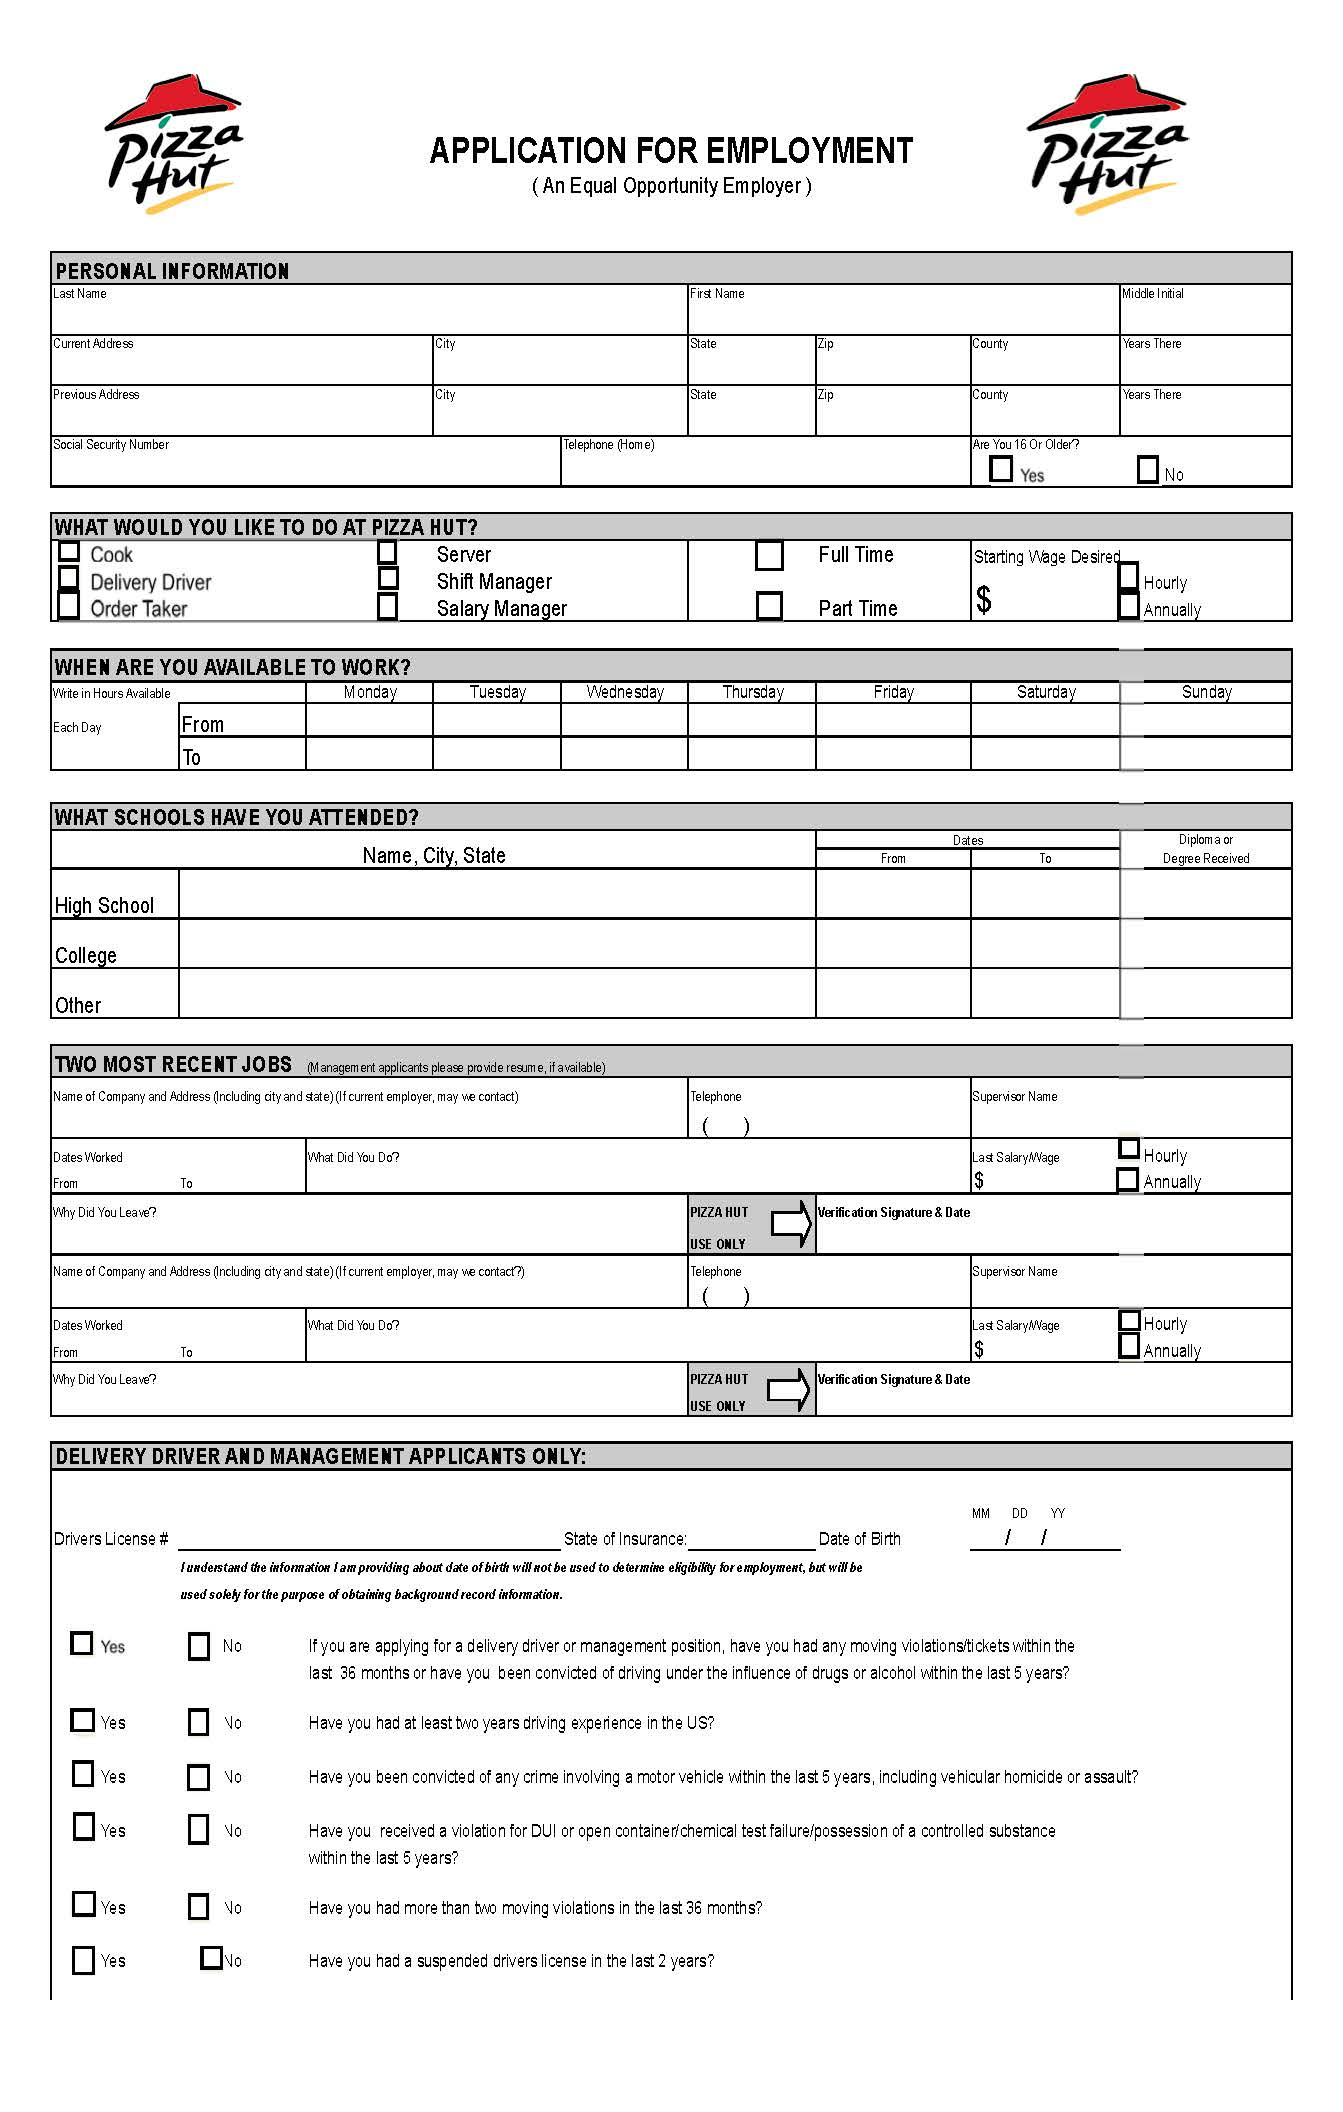 ross job application resume templates ross job application tjxjobs online job application pizza hut application online printable employment application form